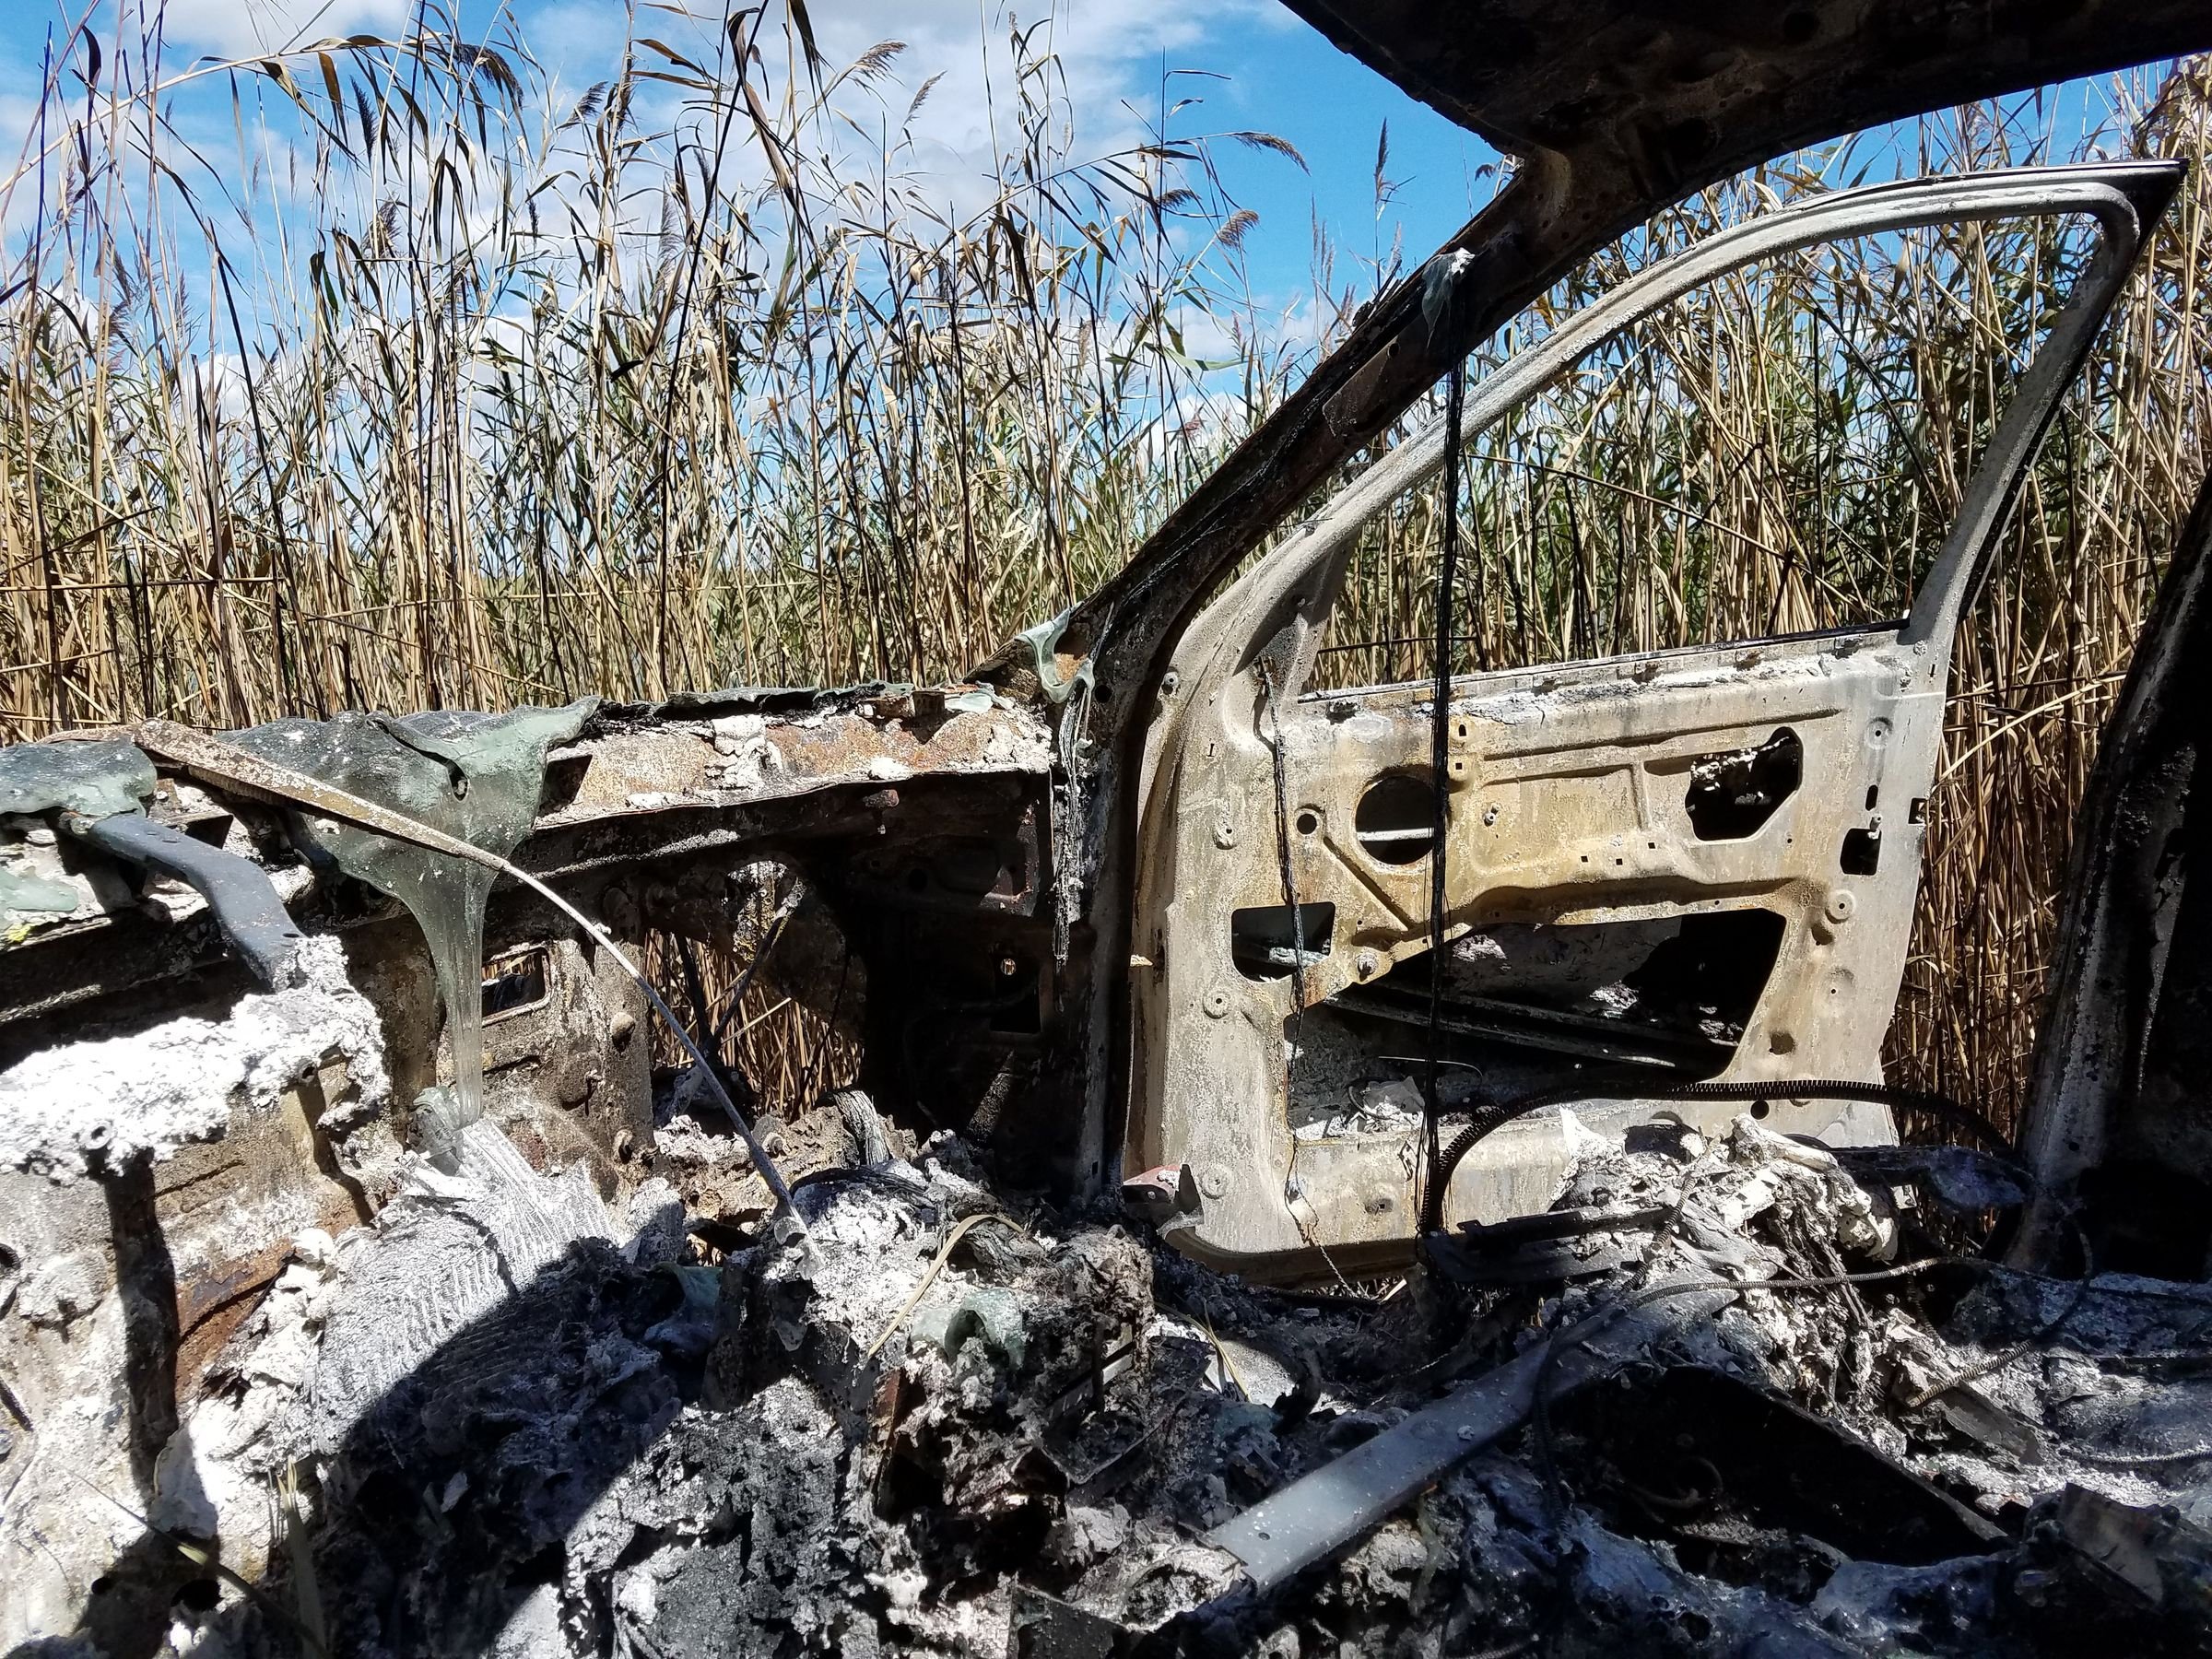 A photo taken from inside the front seat of a burned-out car. A bunch of tall grass and blue sky is visible through the space where the windshield would be.